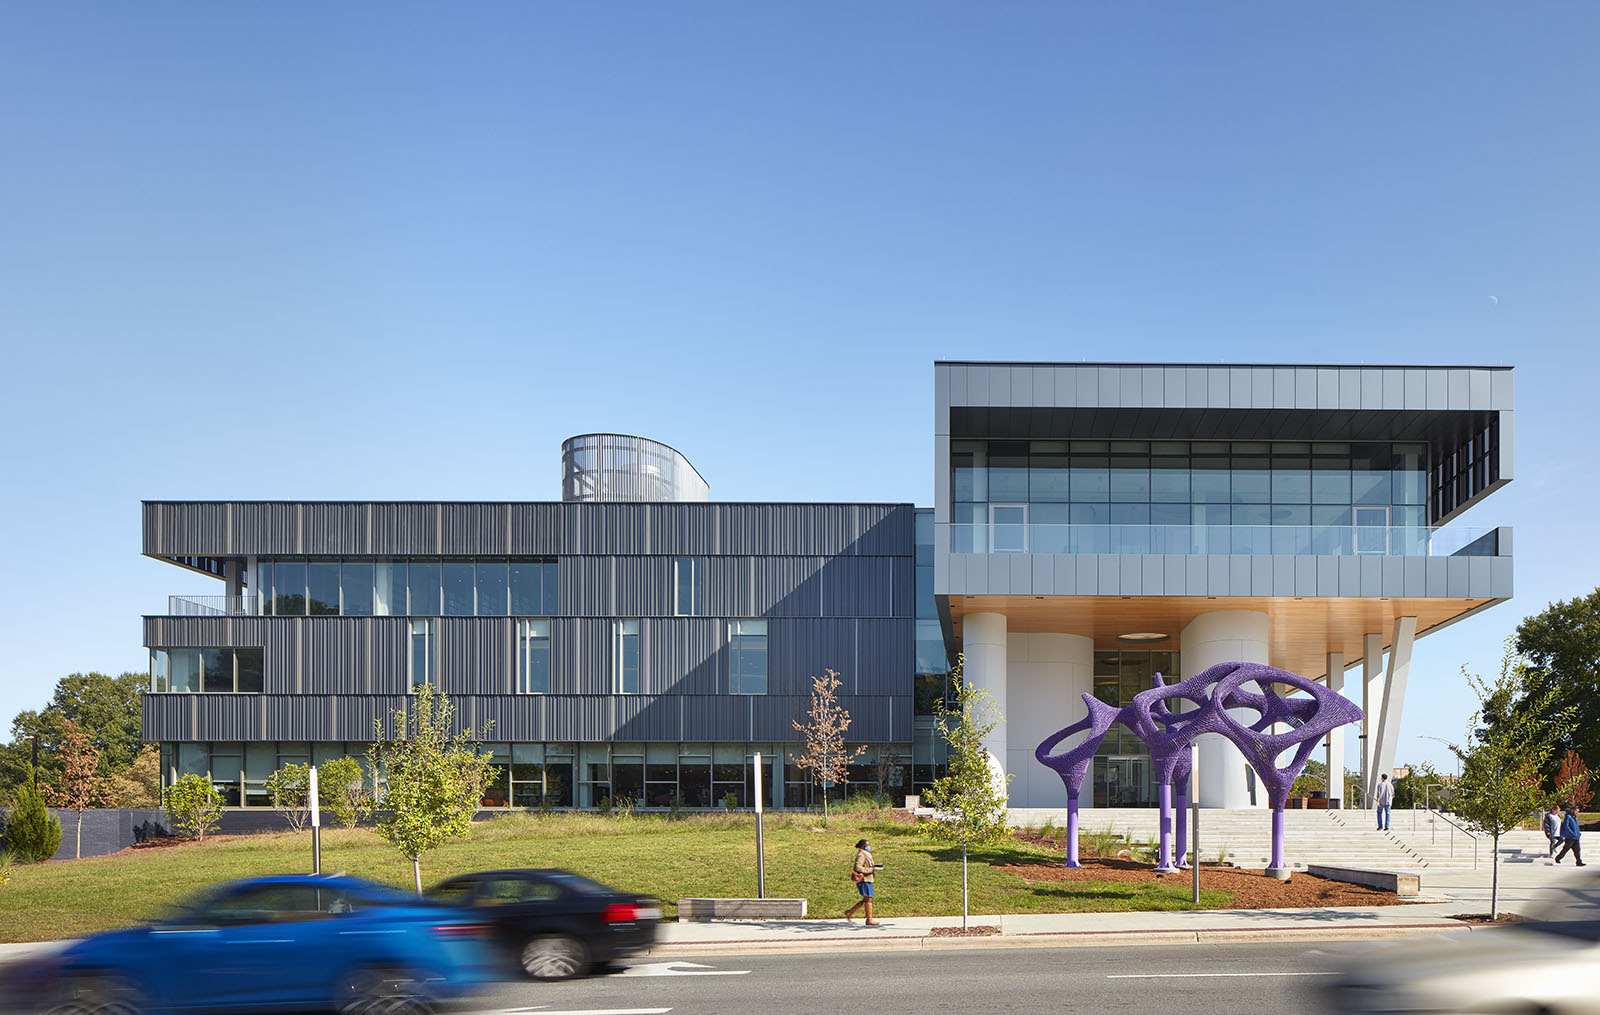 Facade of Main Library along Roxboro Street, with a large purple sculpture in front of the stairs leading up to the building